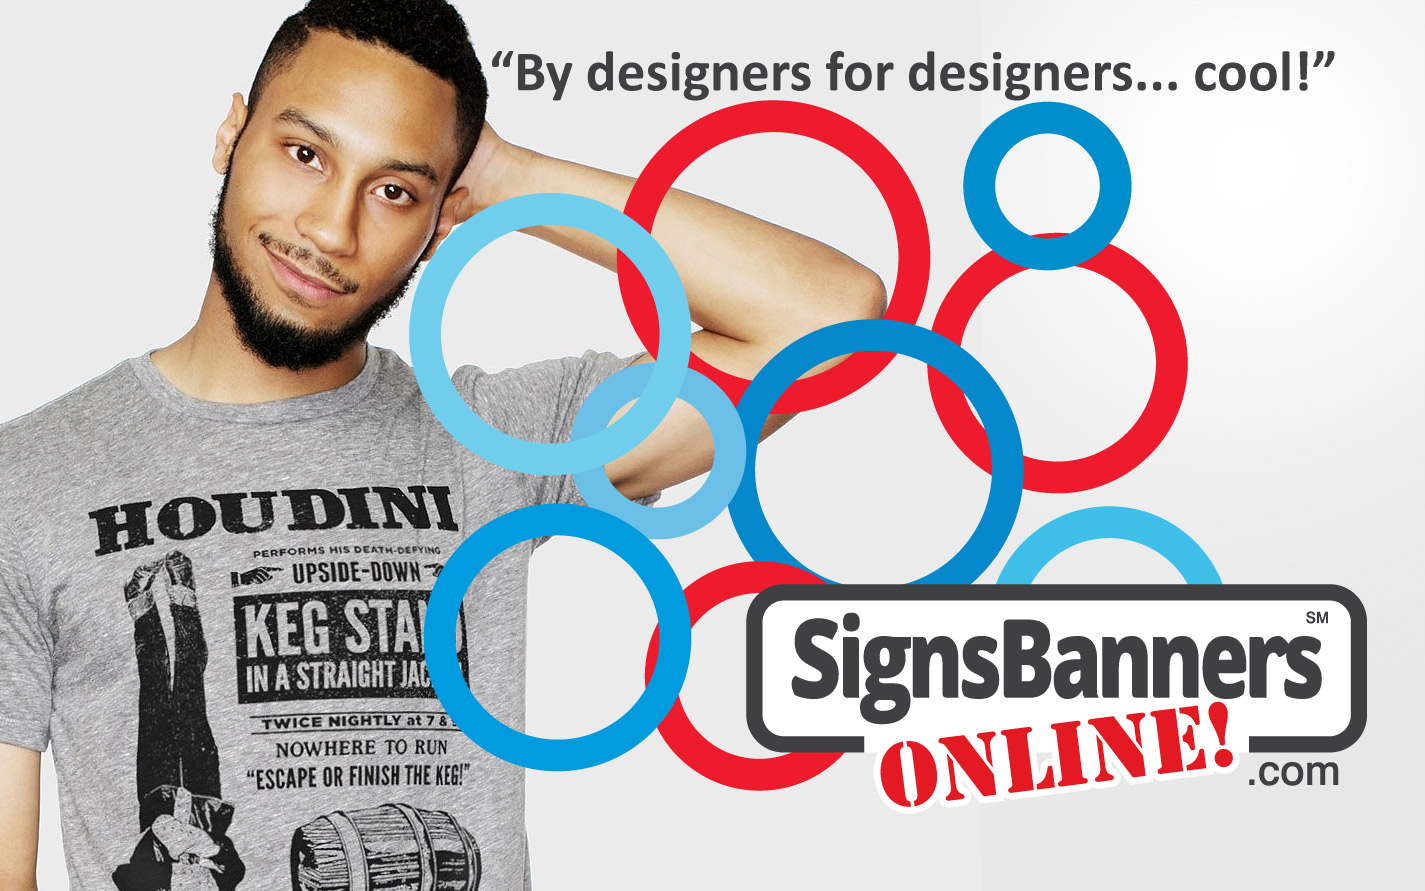 Designers use Signs Banners Online